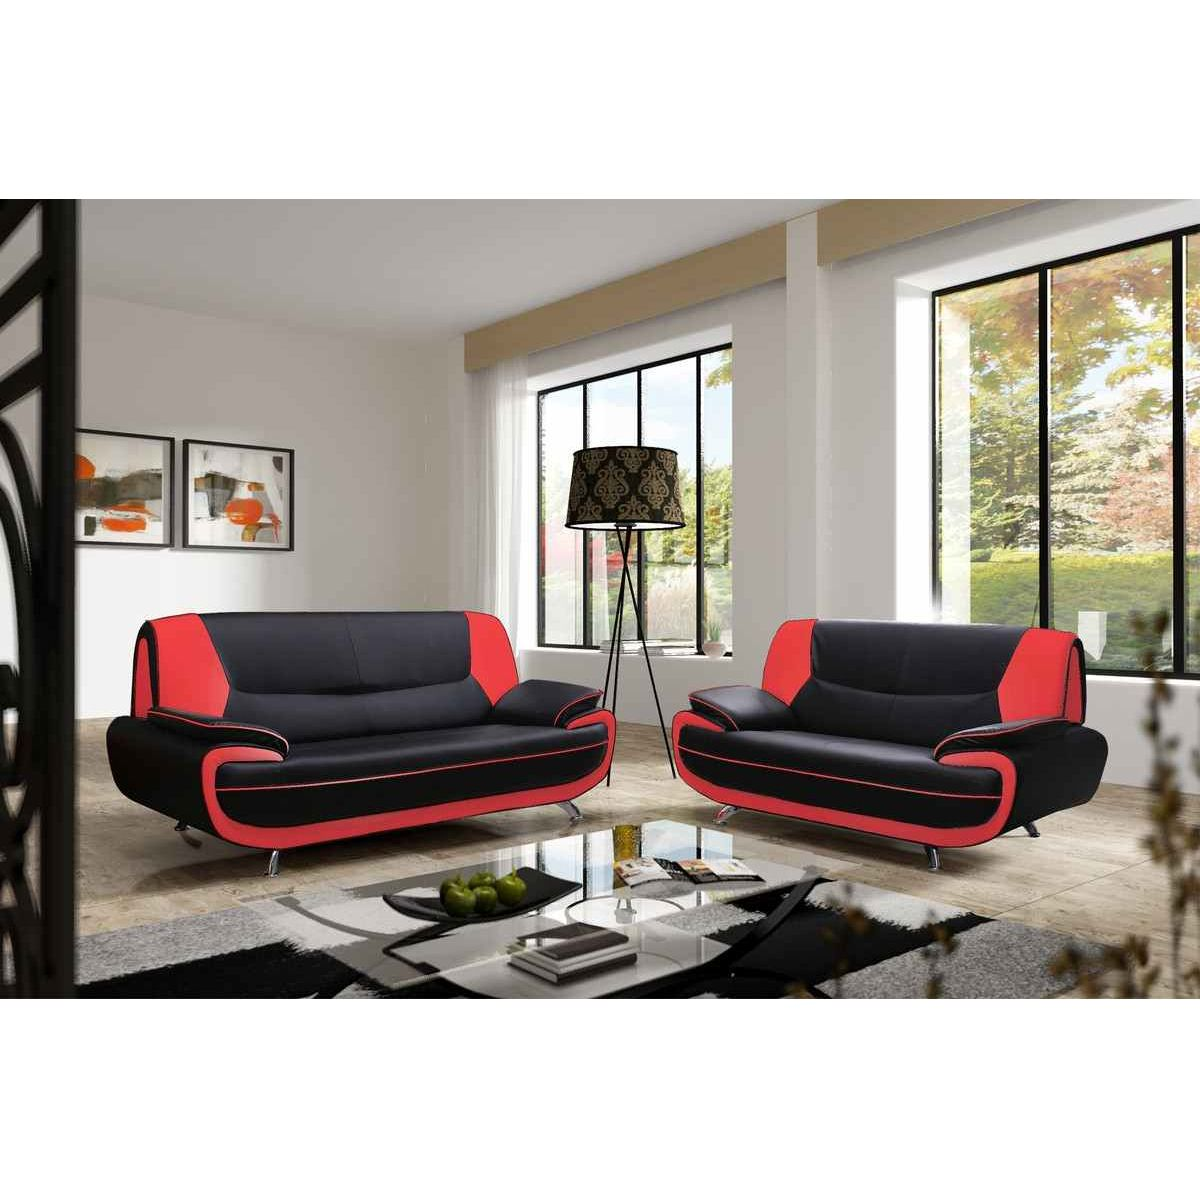 Deco in paris canape 3 2 places noir et rouge marita for Canape cuir noir design